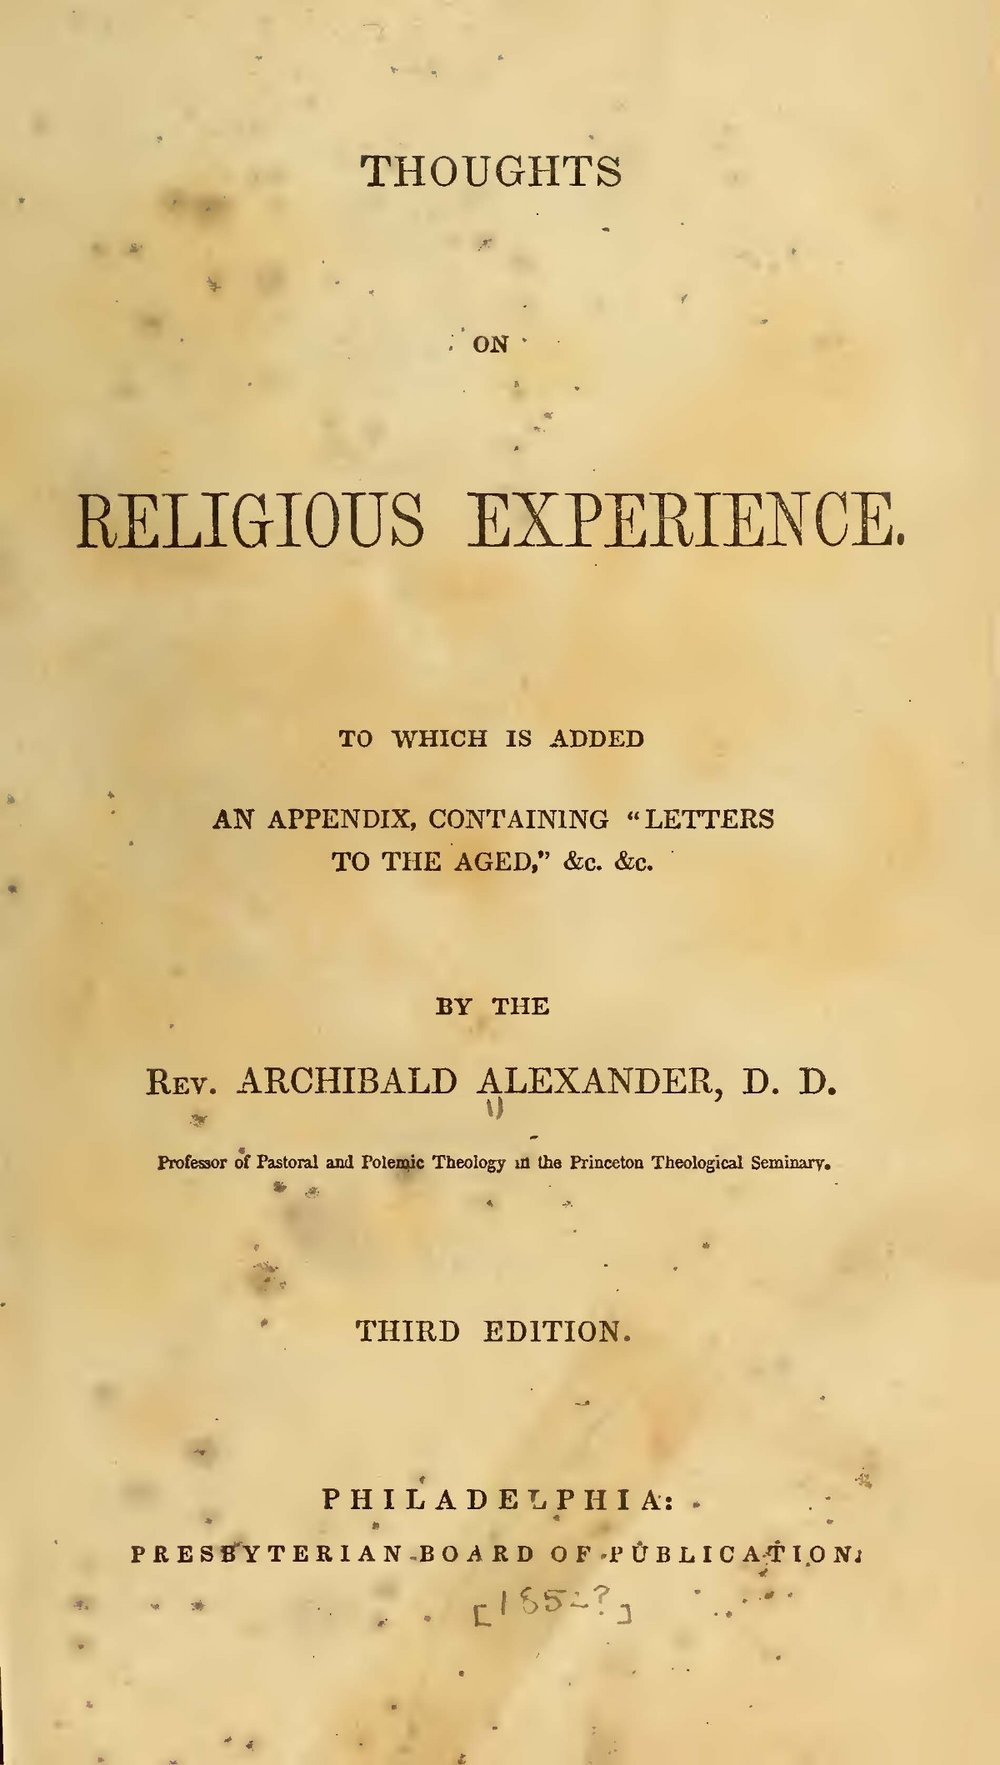 Alexander, Archibald, Thoughts on Religious Experience with Appendix Title Page.jpg